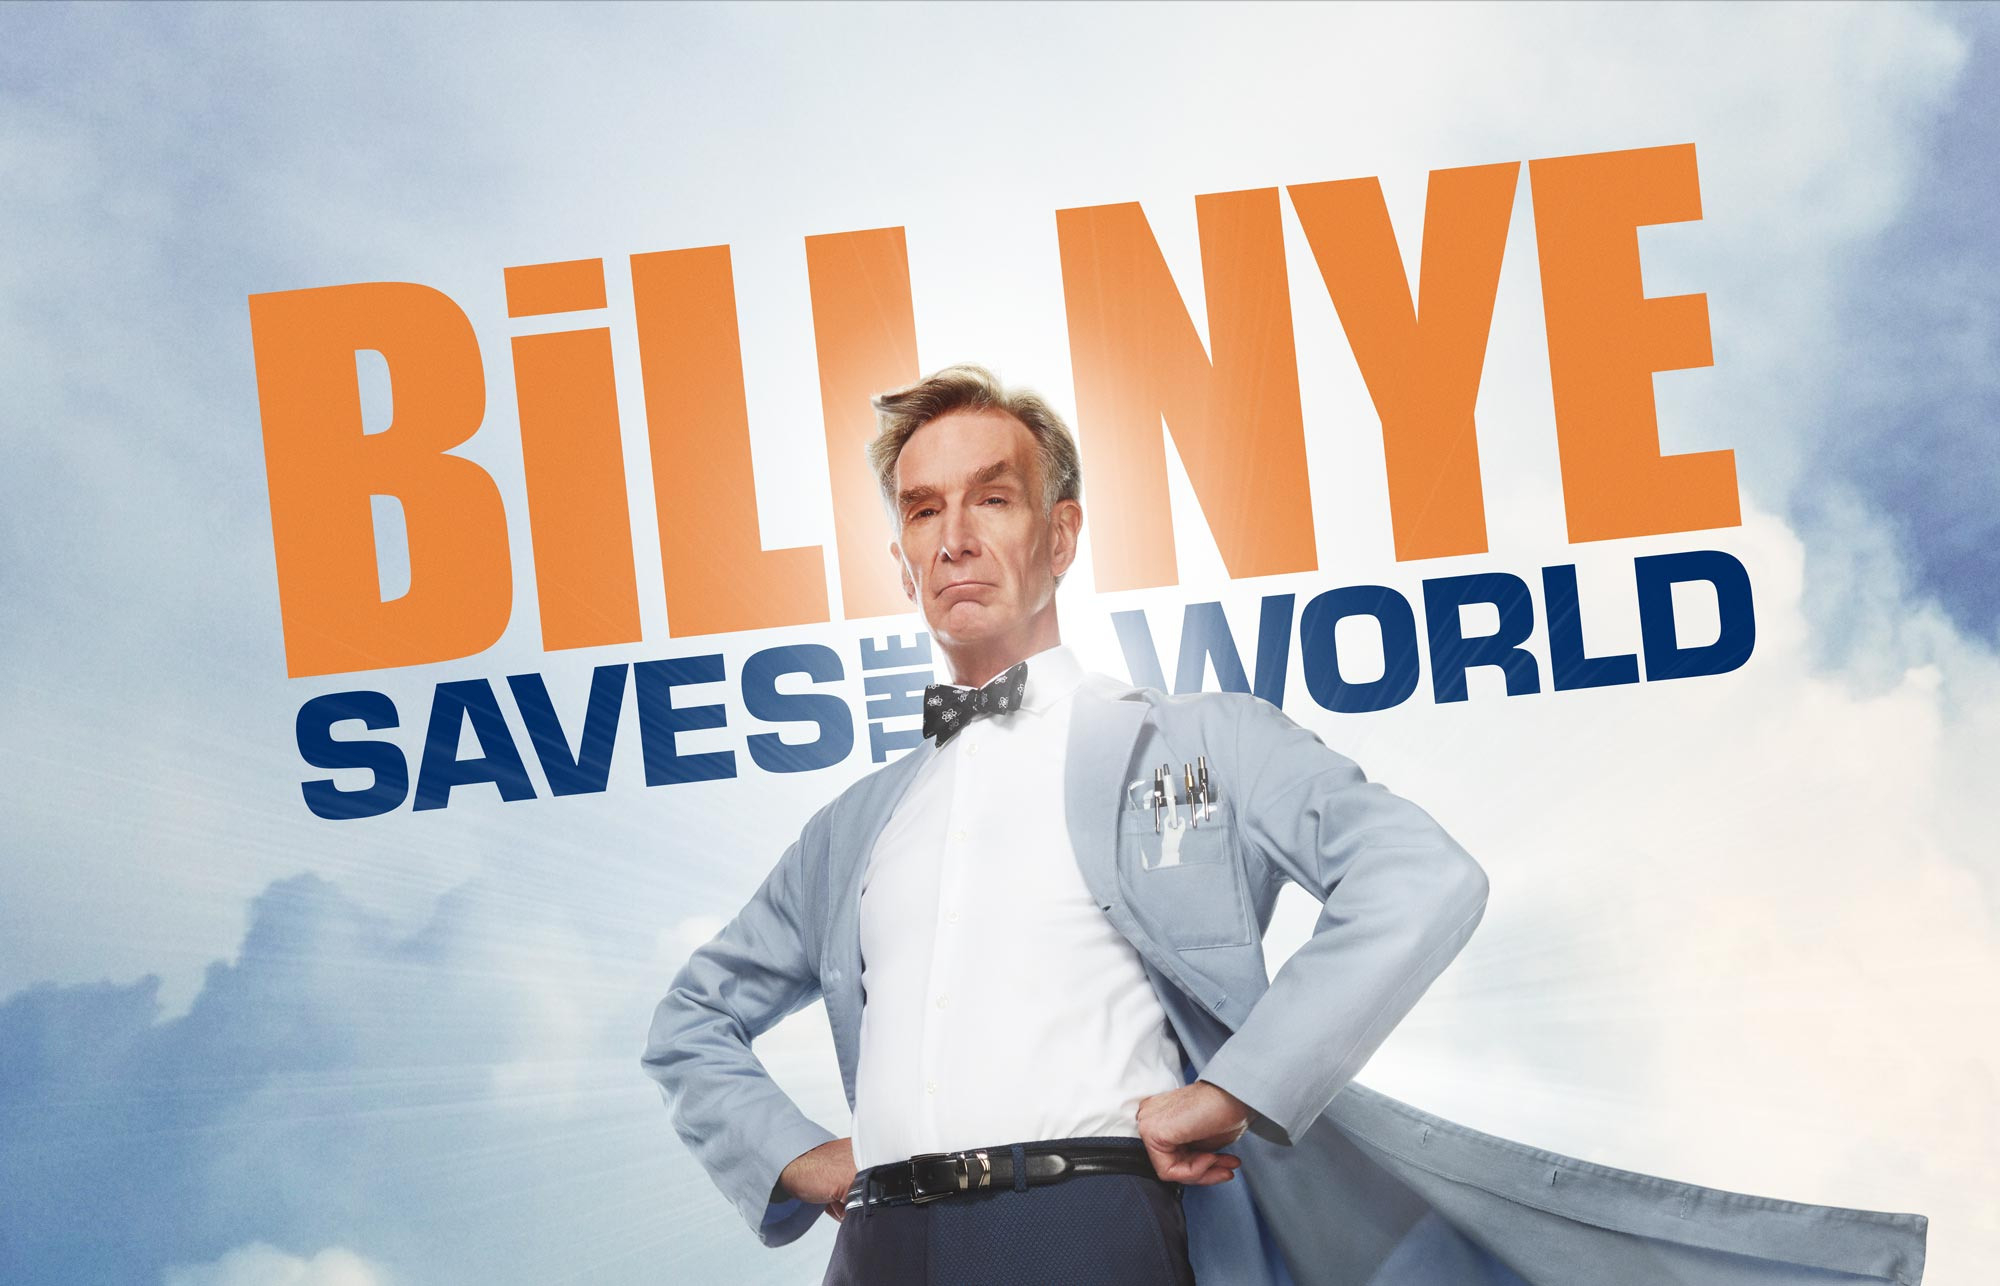 Bill Nye Official Website Of Bill Nye The Science Guy